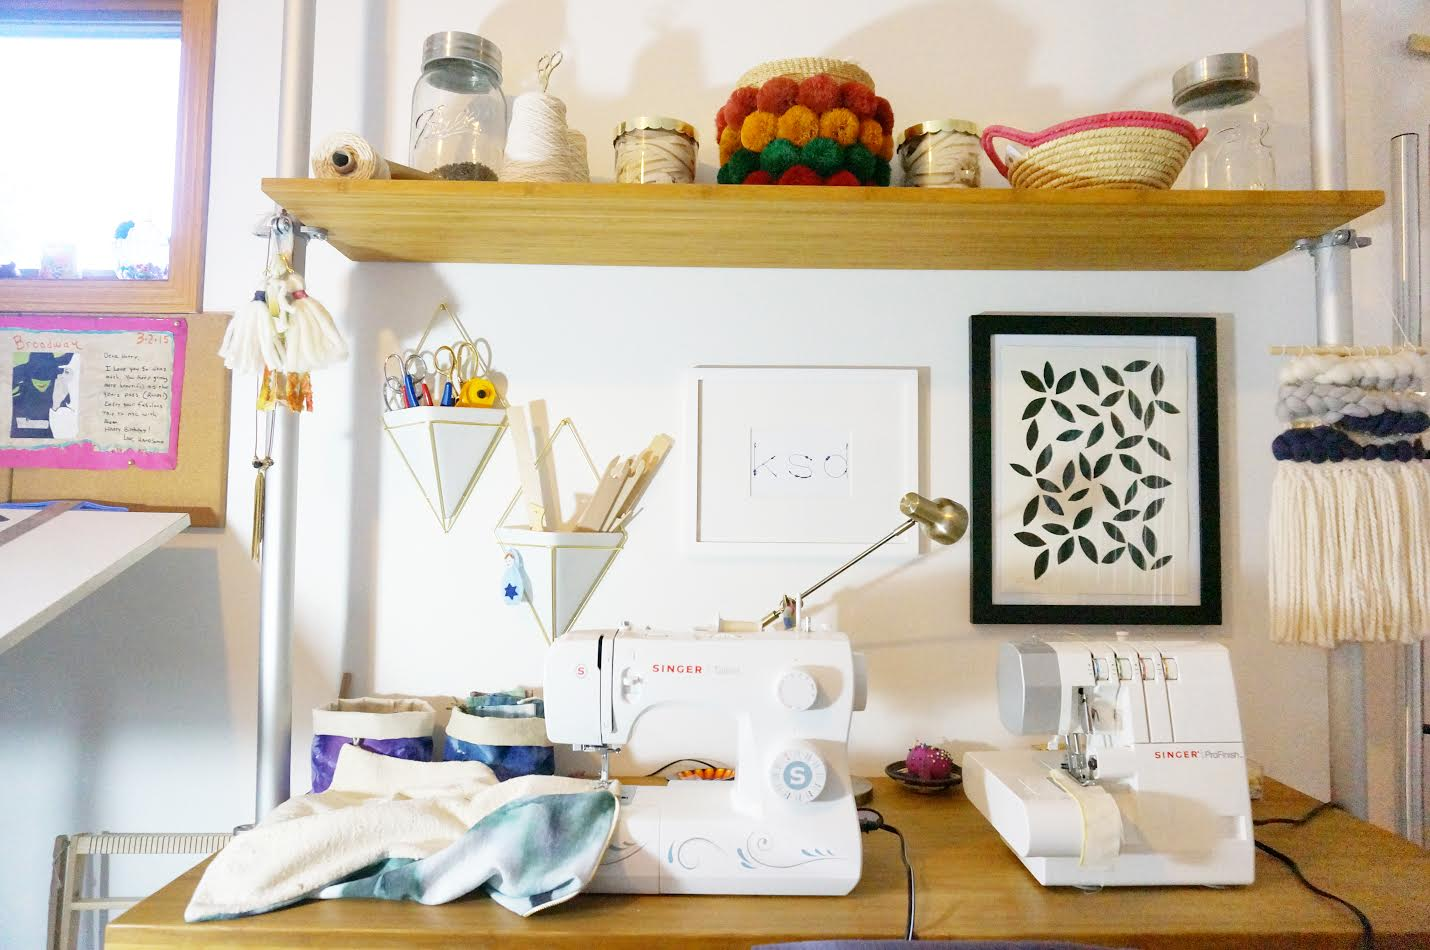 My favorite studio addition is my sewing/serging station. It is such a time saver being able to keep my machines handy all the time. Plus the upper shelf provides additional storage for product supplies, such as zippers.